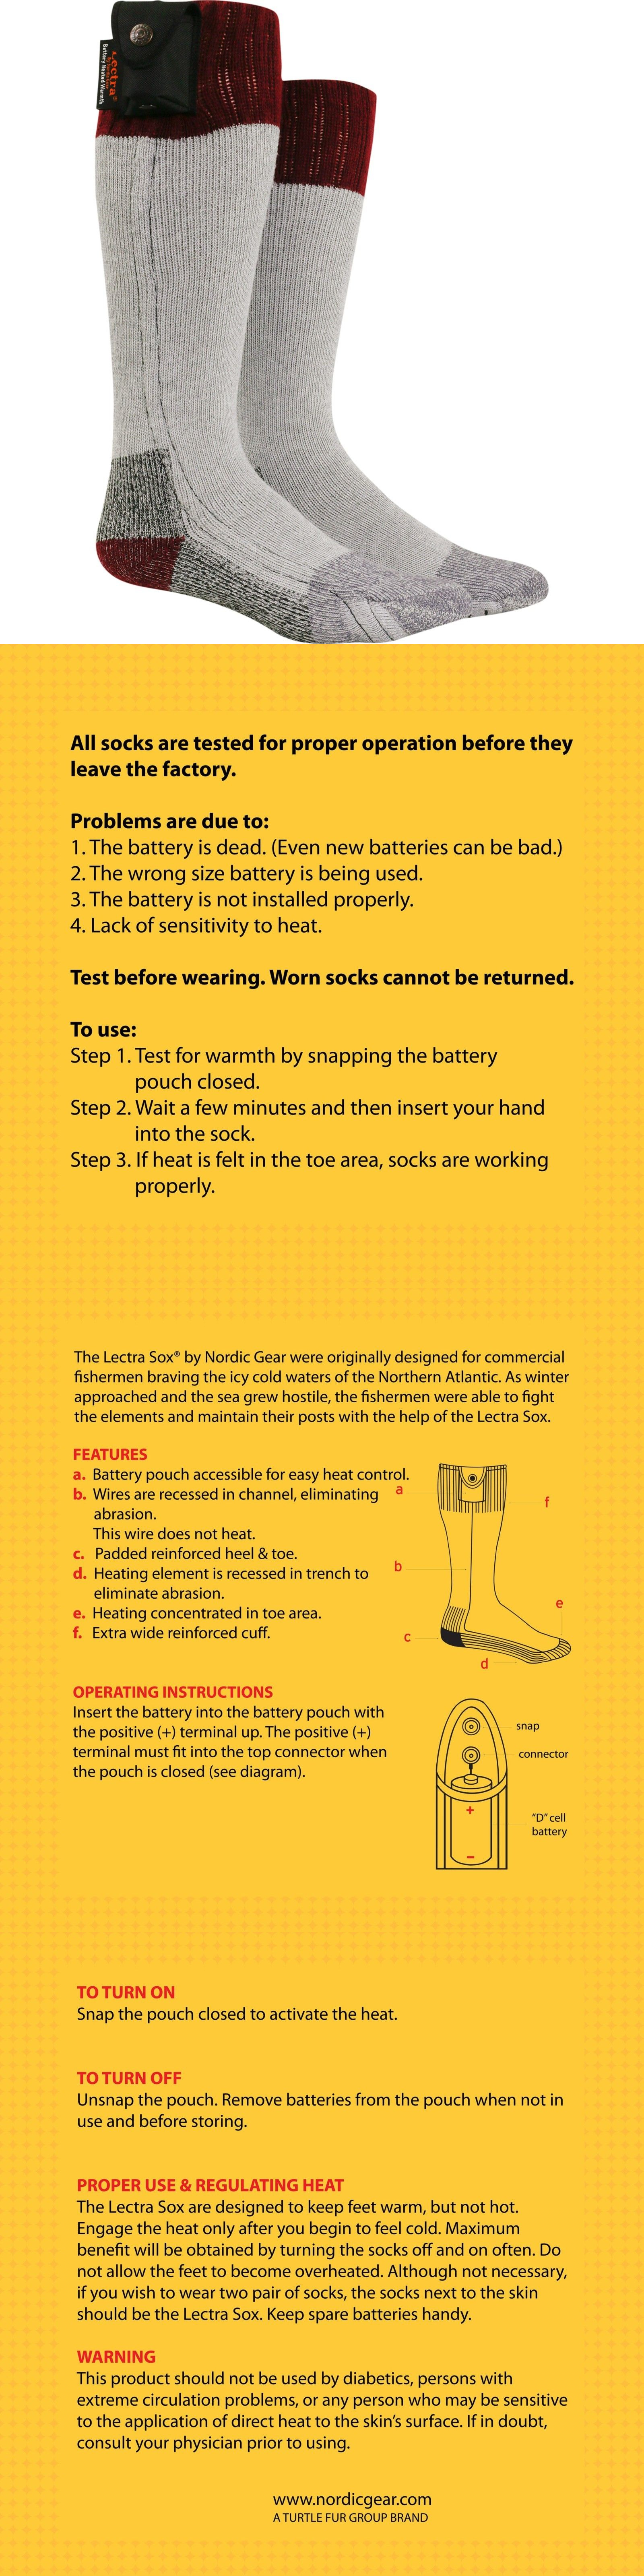 Hand And Foot Warmers 159183 Nordic Gear Unisex Lectra Sox Electric Easy Heat Wiring Diagram Battery Heated Socks Large